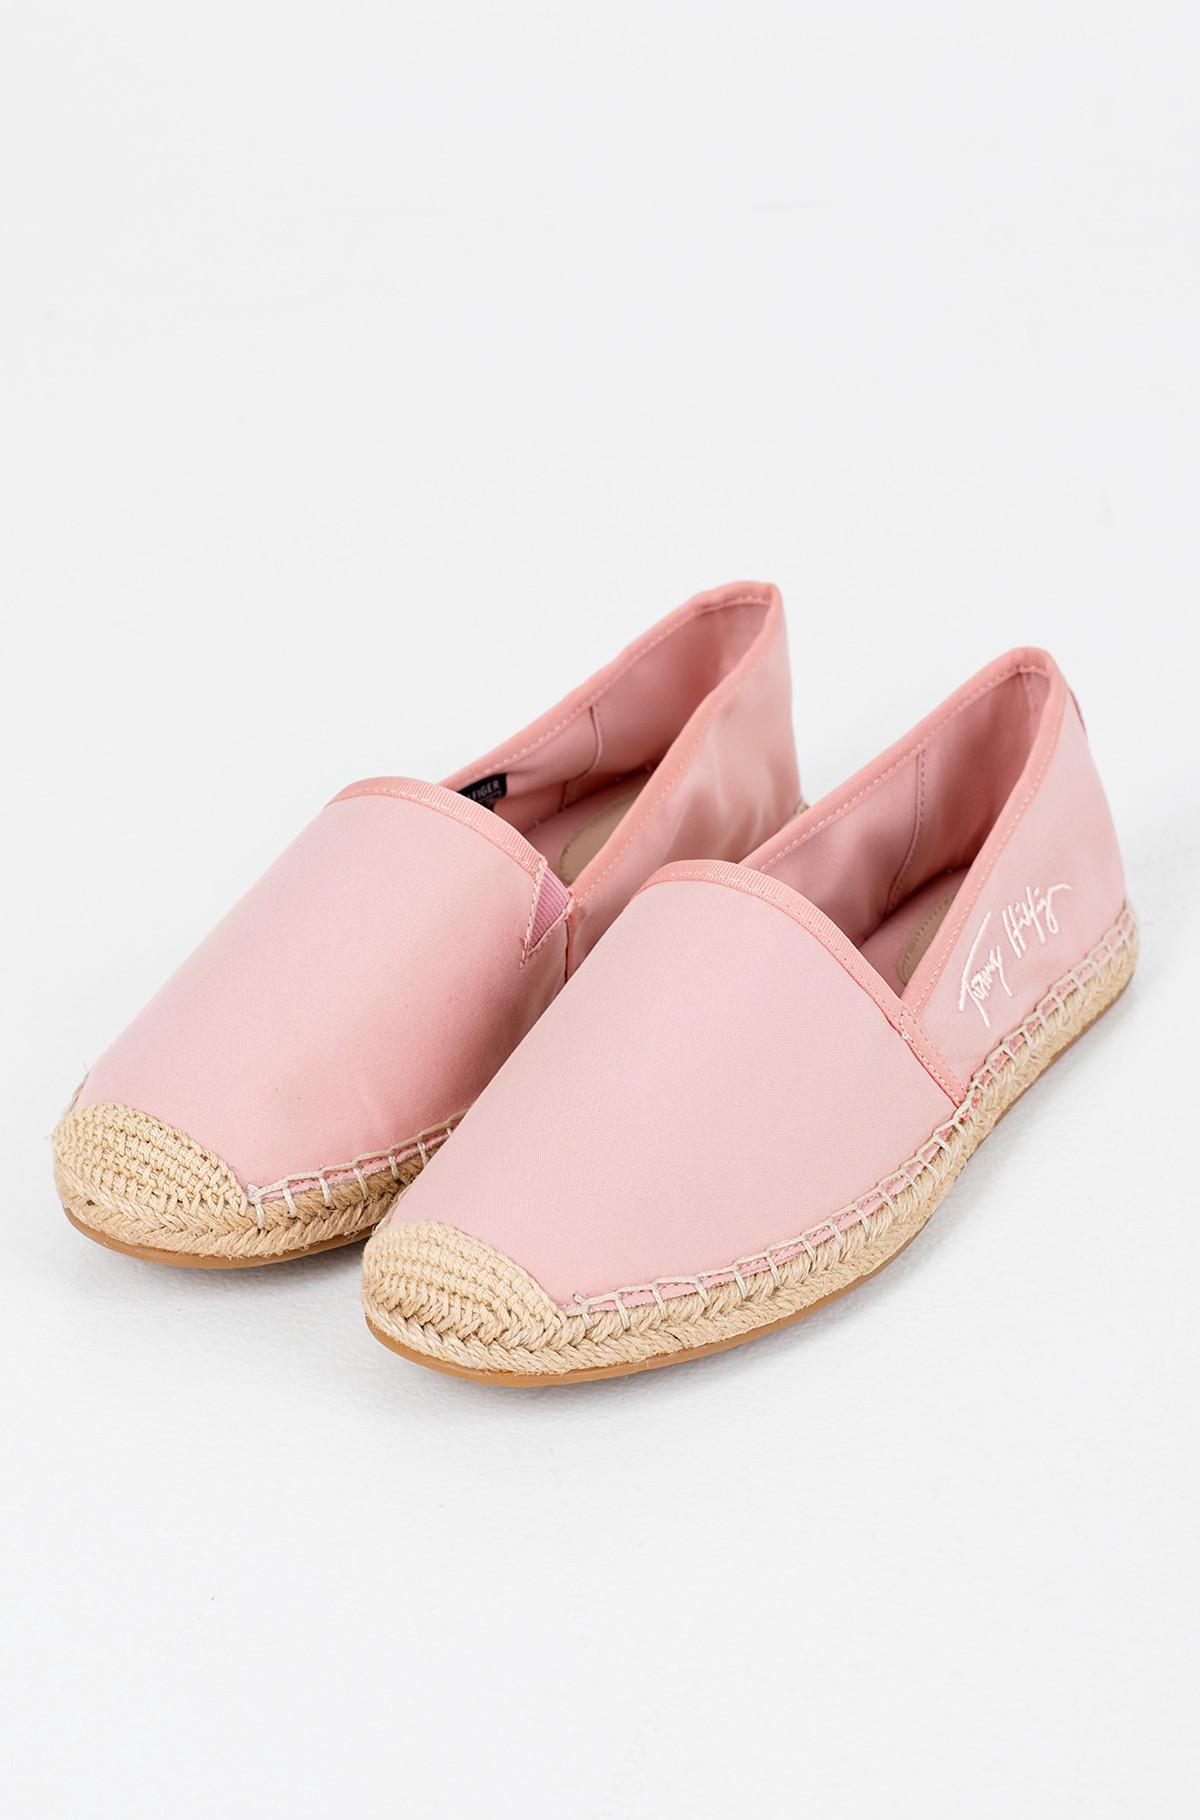 Espadrilles TH SIGNATURE ESPADRILLE-full-1